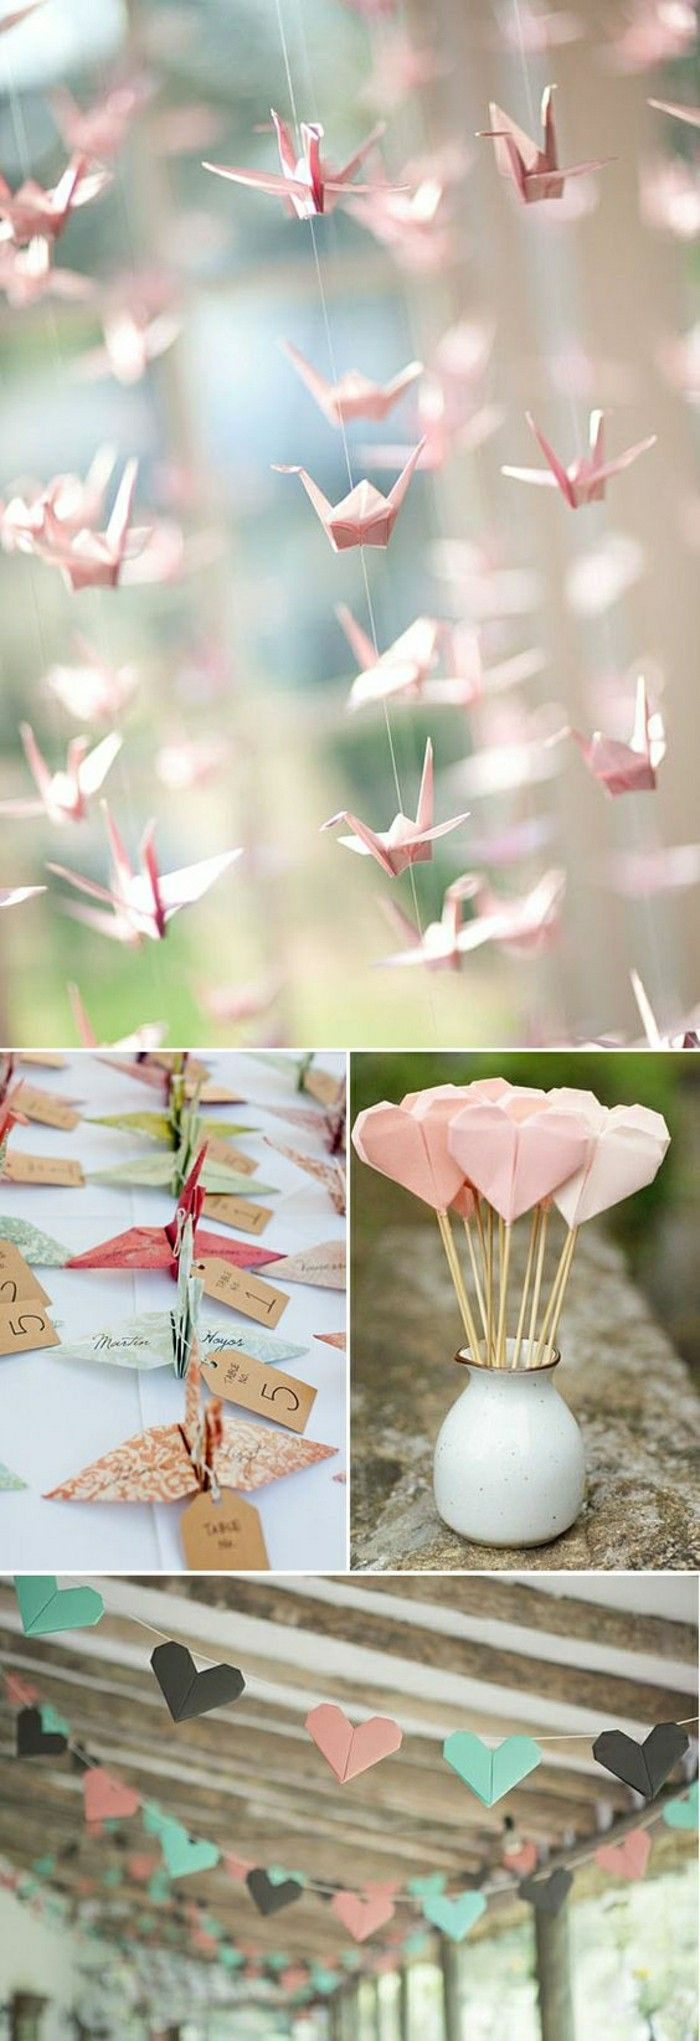 Super Best 25+ Mariage ideas on Pinterest | Wedding ideas, Wedding  KU07